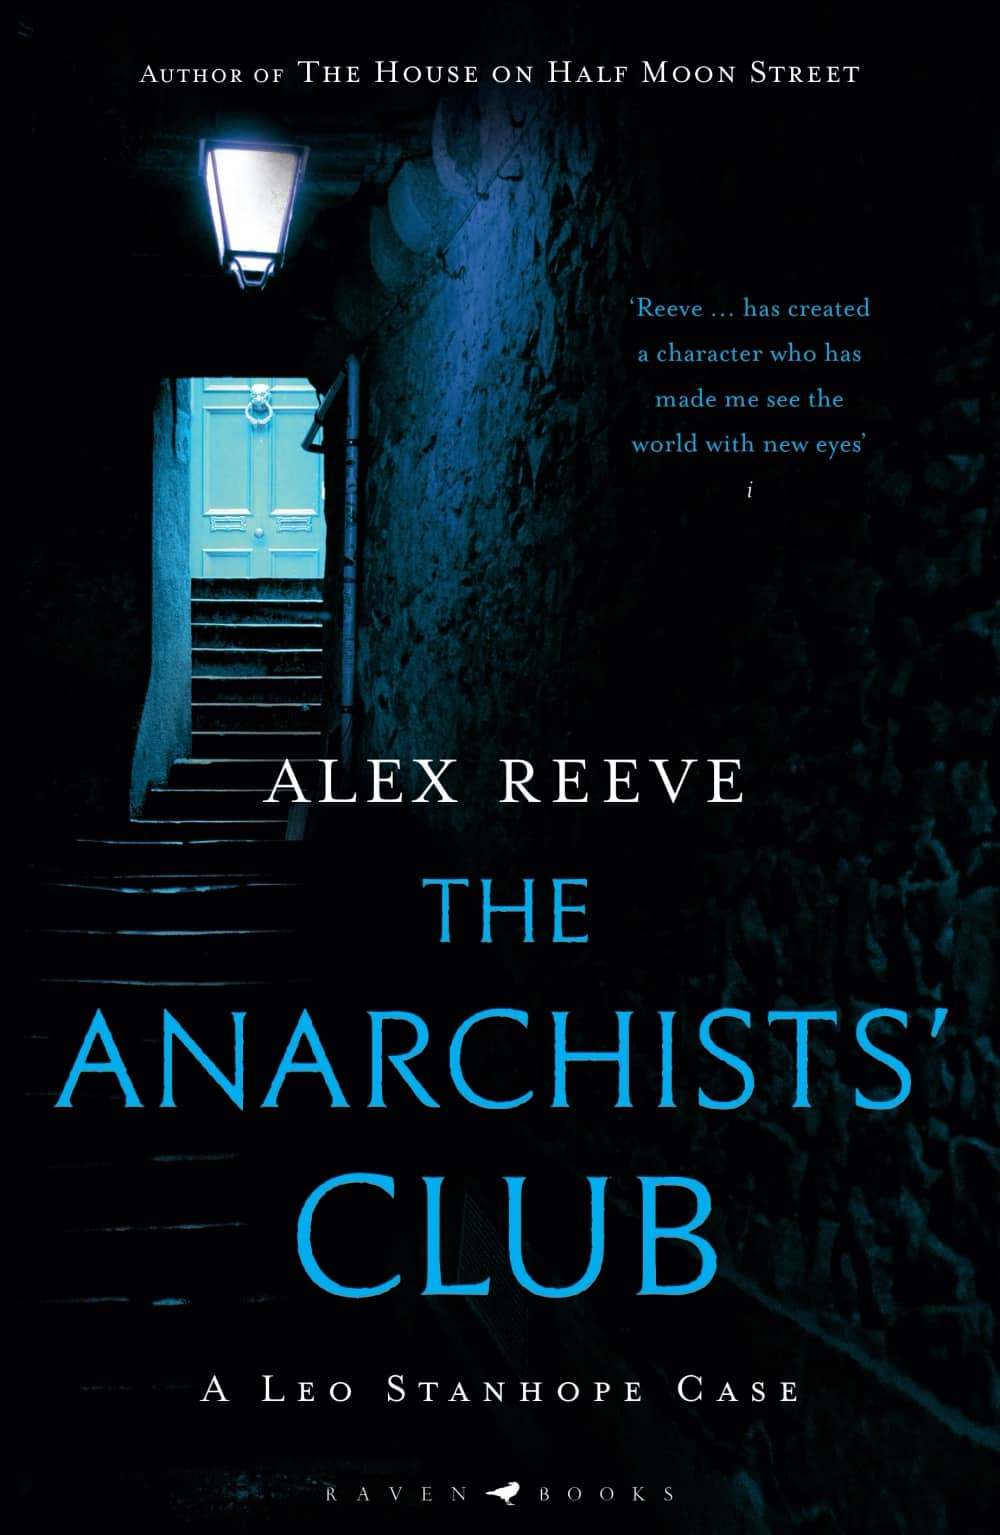 The Anarchists Club by Alex Reeve